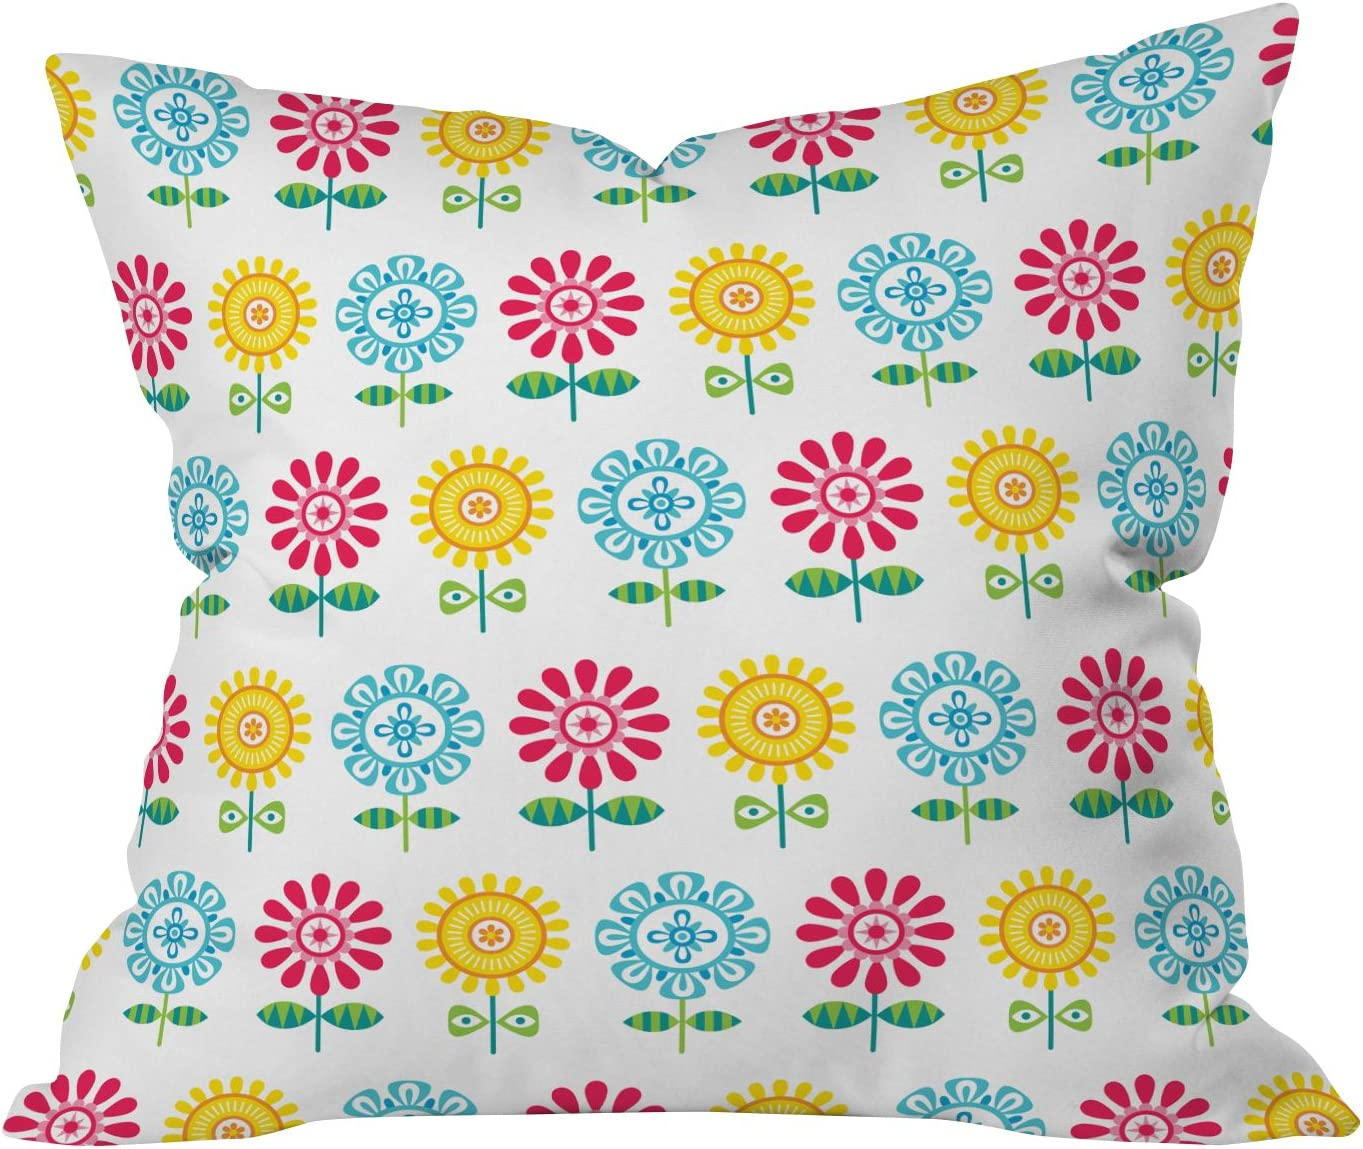 Deny Designs Andi Bird Pt Reyes Flowers Throw Pillow, 26 x 26